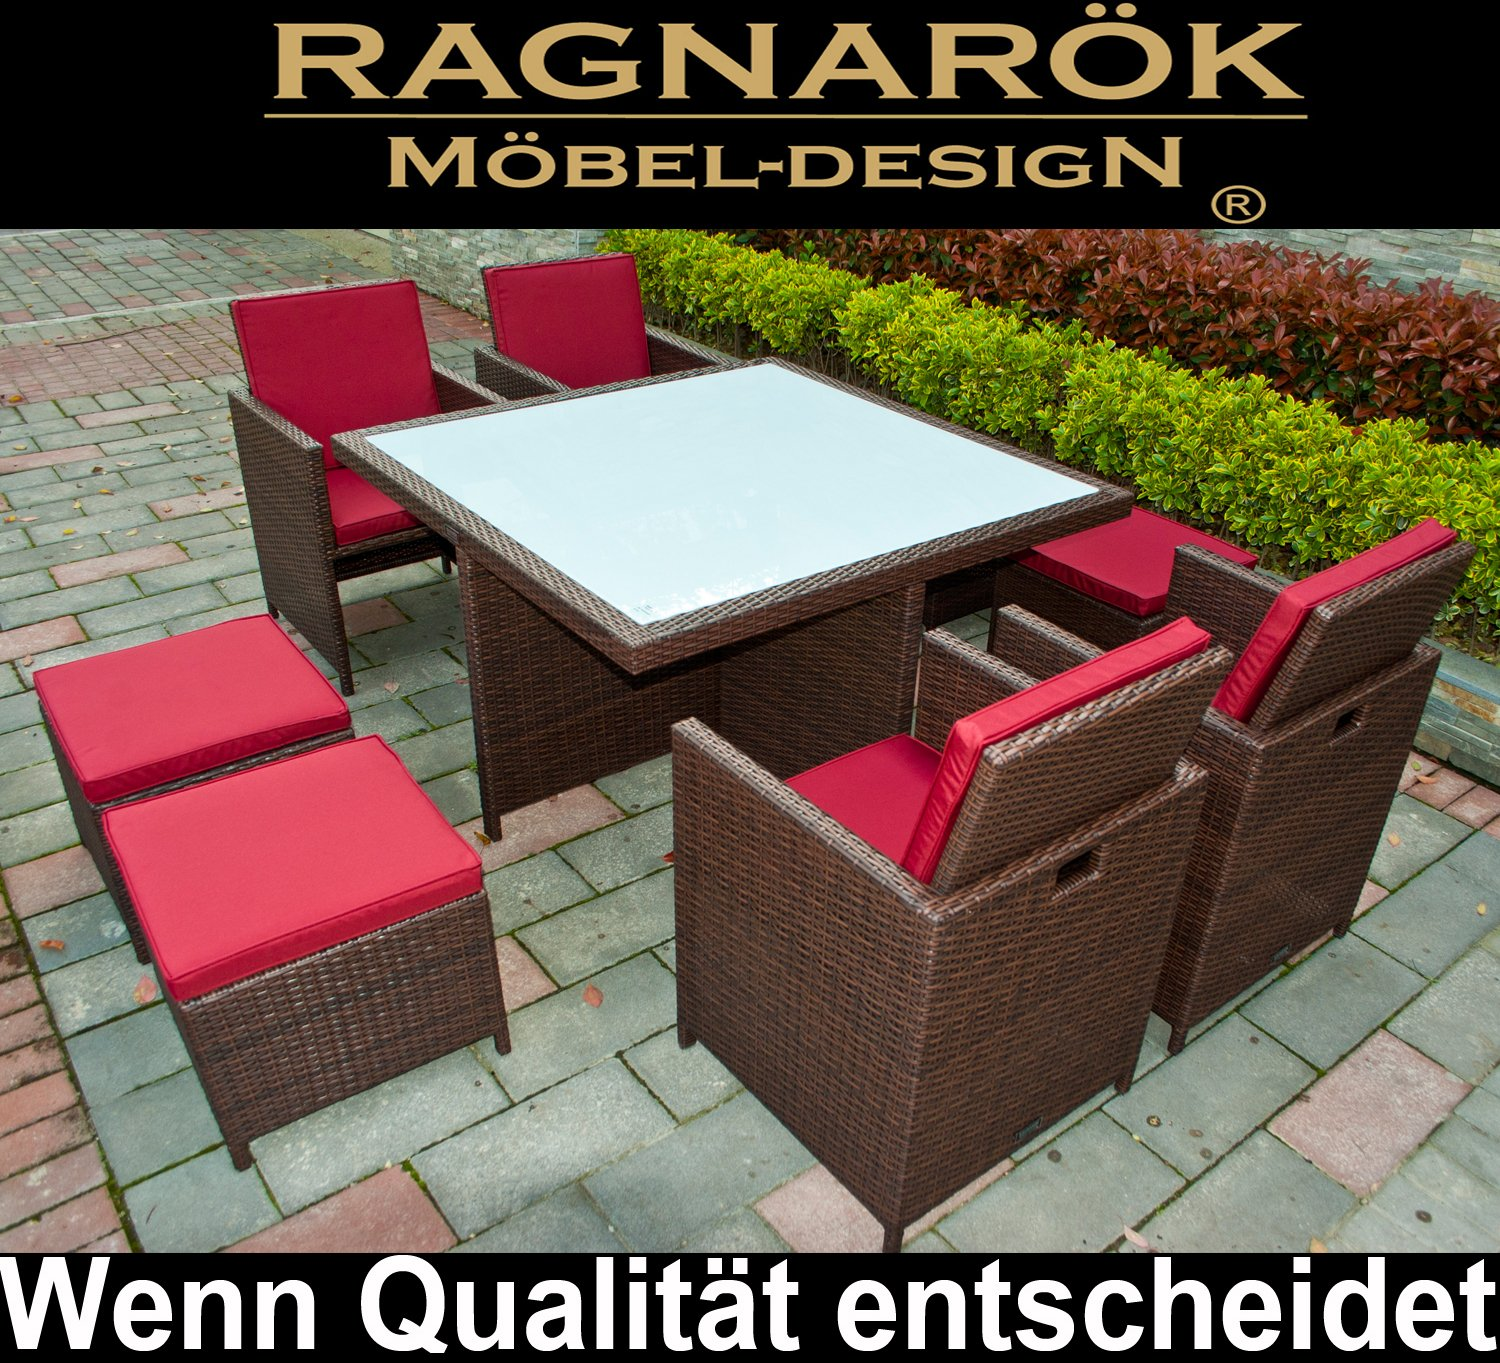 gartenm bel polyrattan deutsche marke eignene produktion essgruppe tisch 4 st hle 4. Black Bedroom Furniture Sets. Home Design Ideas